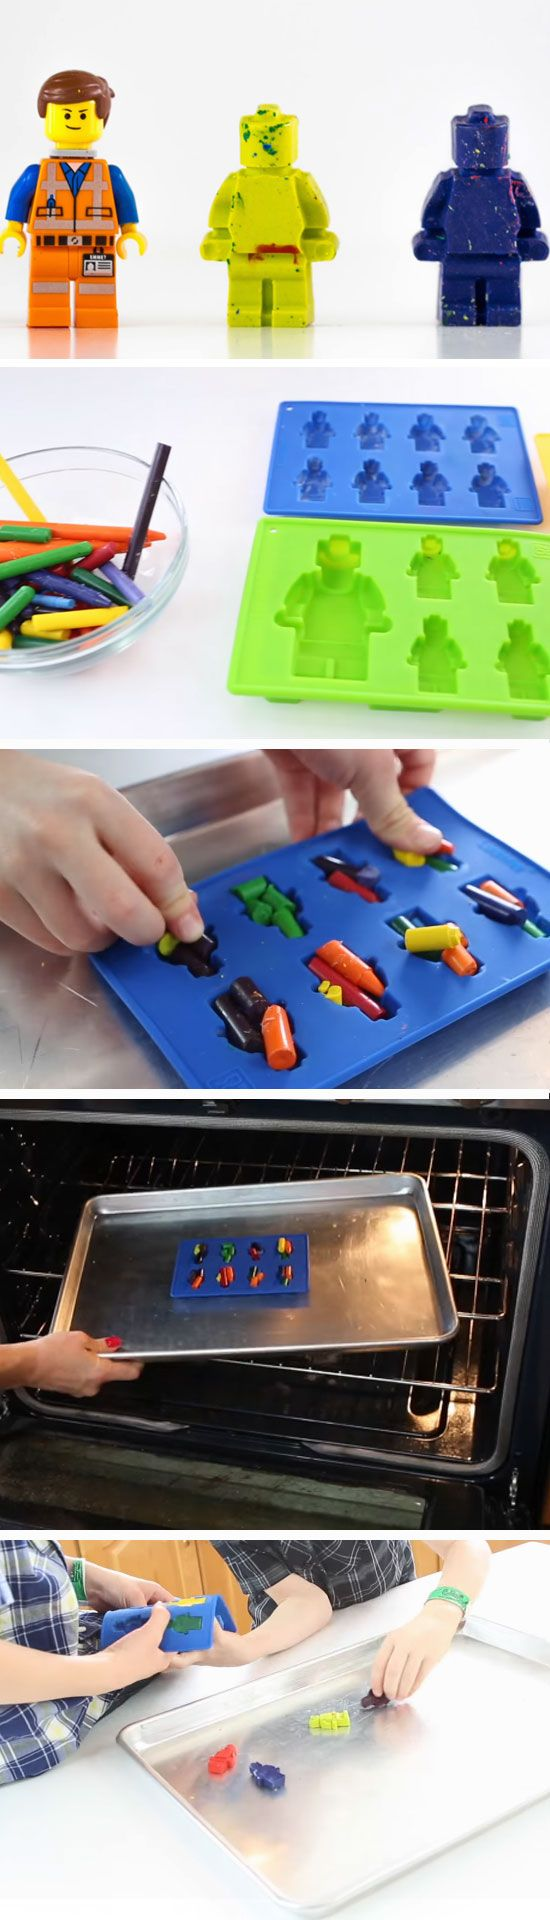 Lego Crayons | Birthday Party Ideas for Boys | DIY Lego Party Ideas for Boys